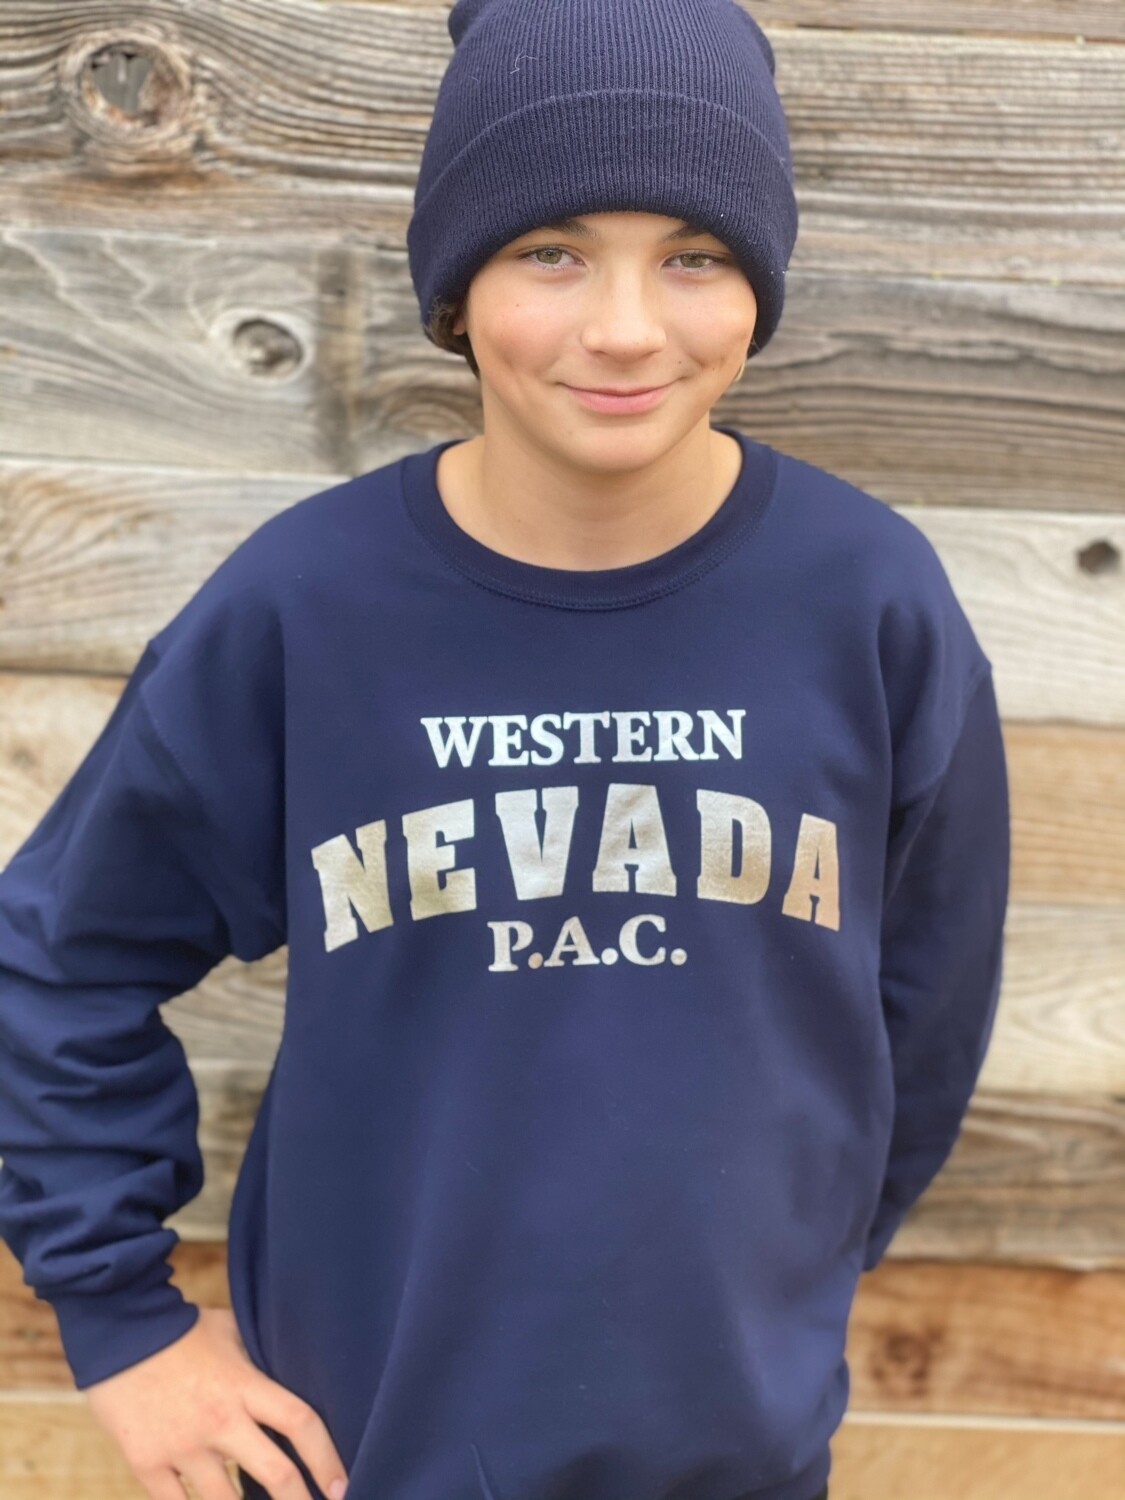 Western Nevada P.A.C. Sweatshirt and Hoodies Youth and Adult